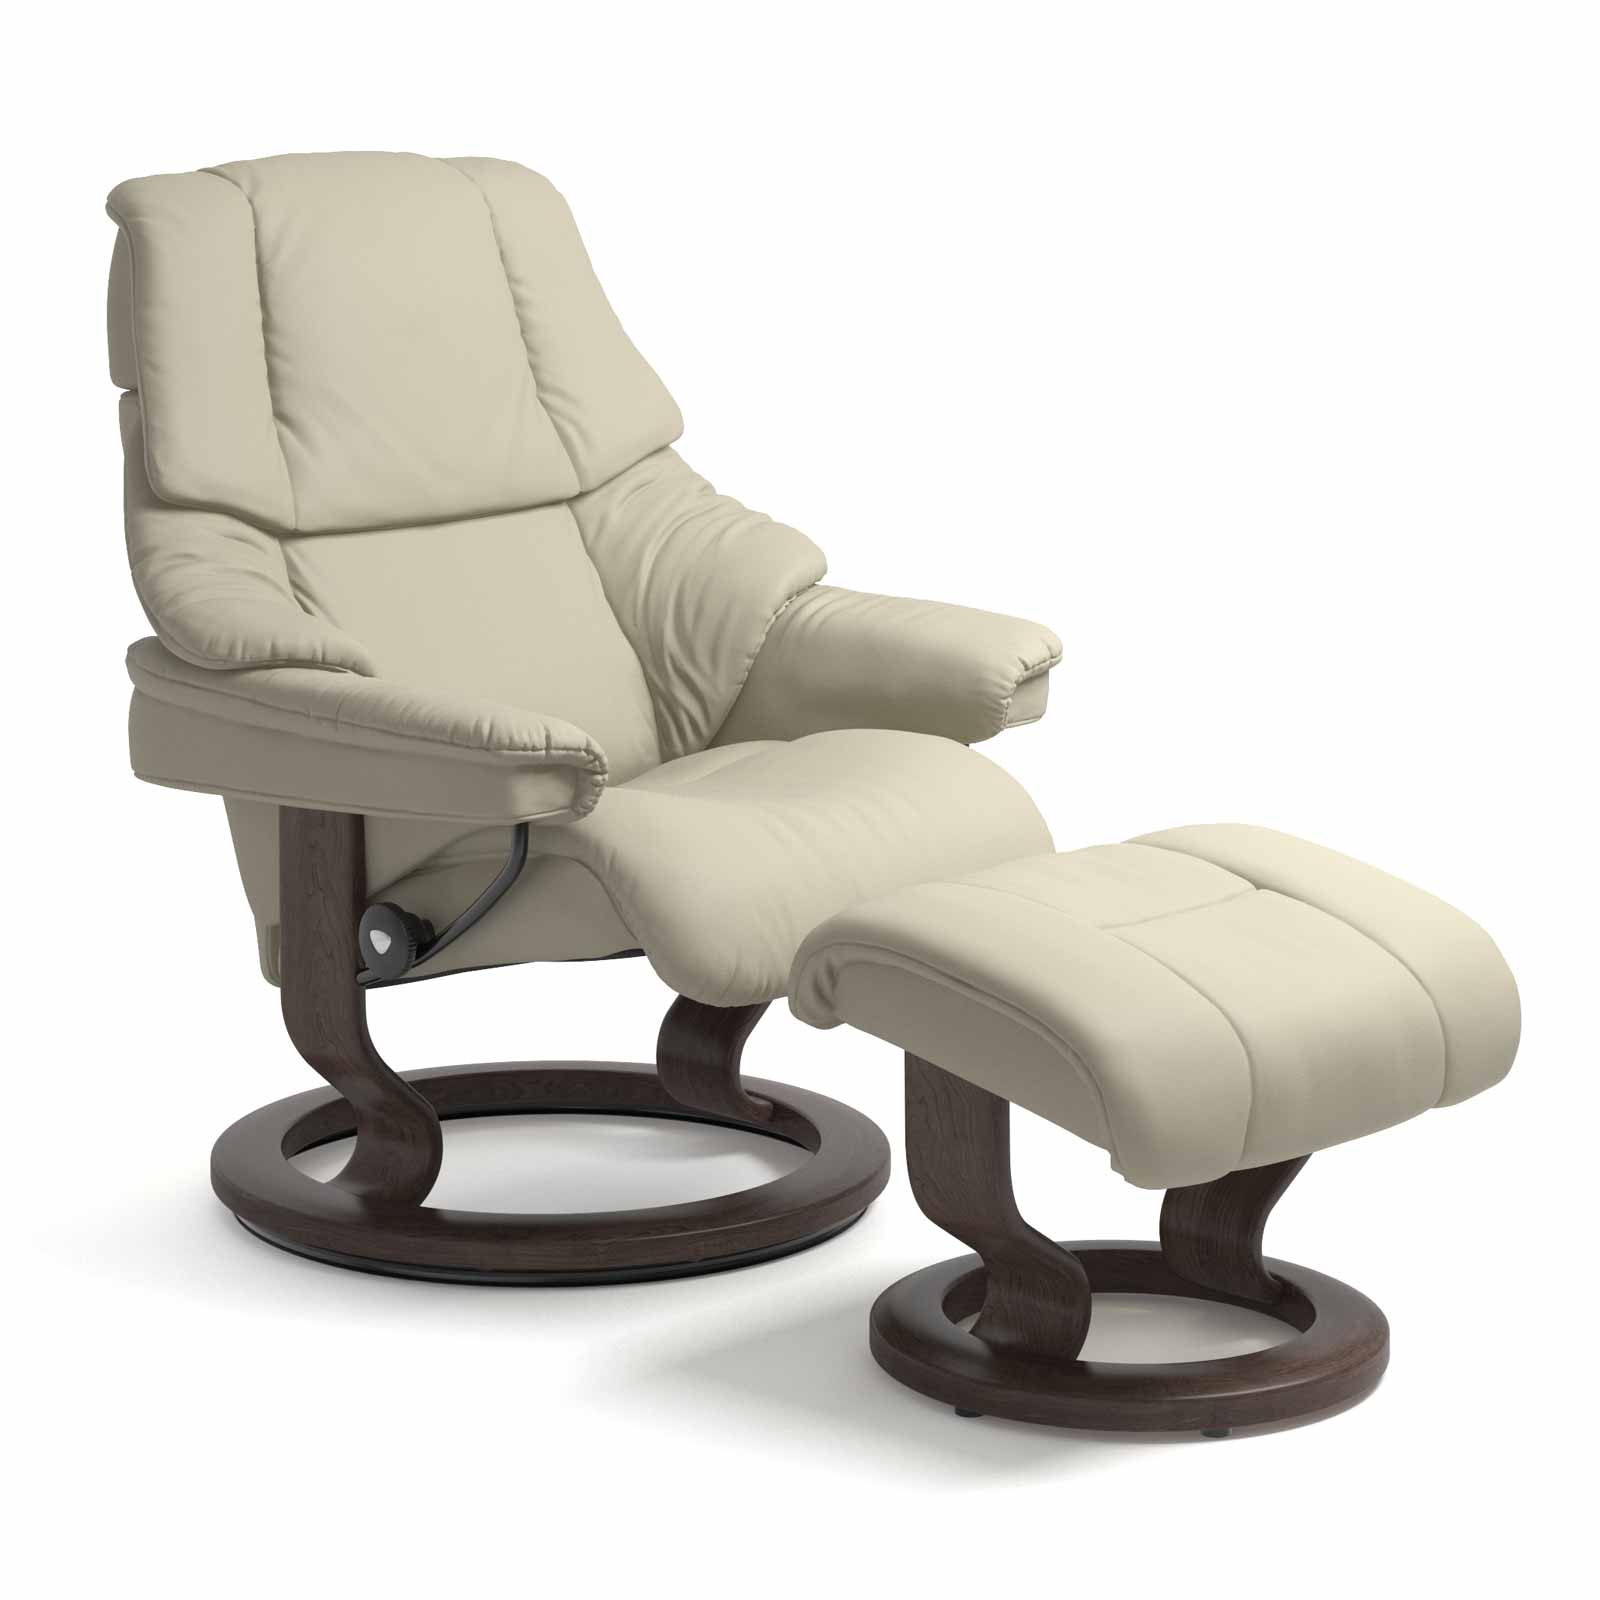 stressless sessel reno classic s paloma light grey mit hocker. Black Bedroom Furniture Sets. Home Design Ideas